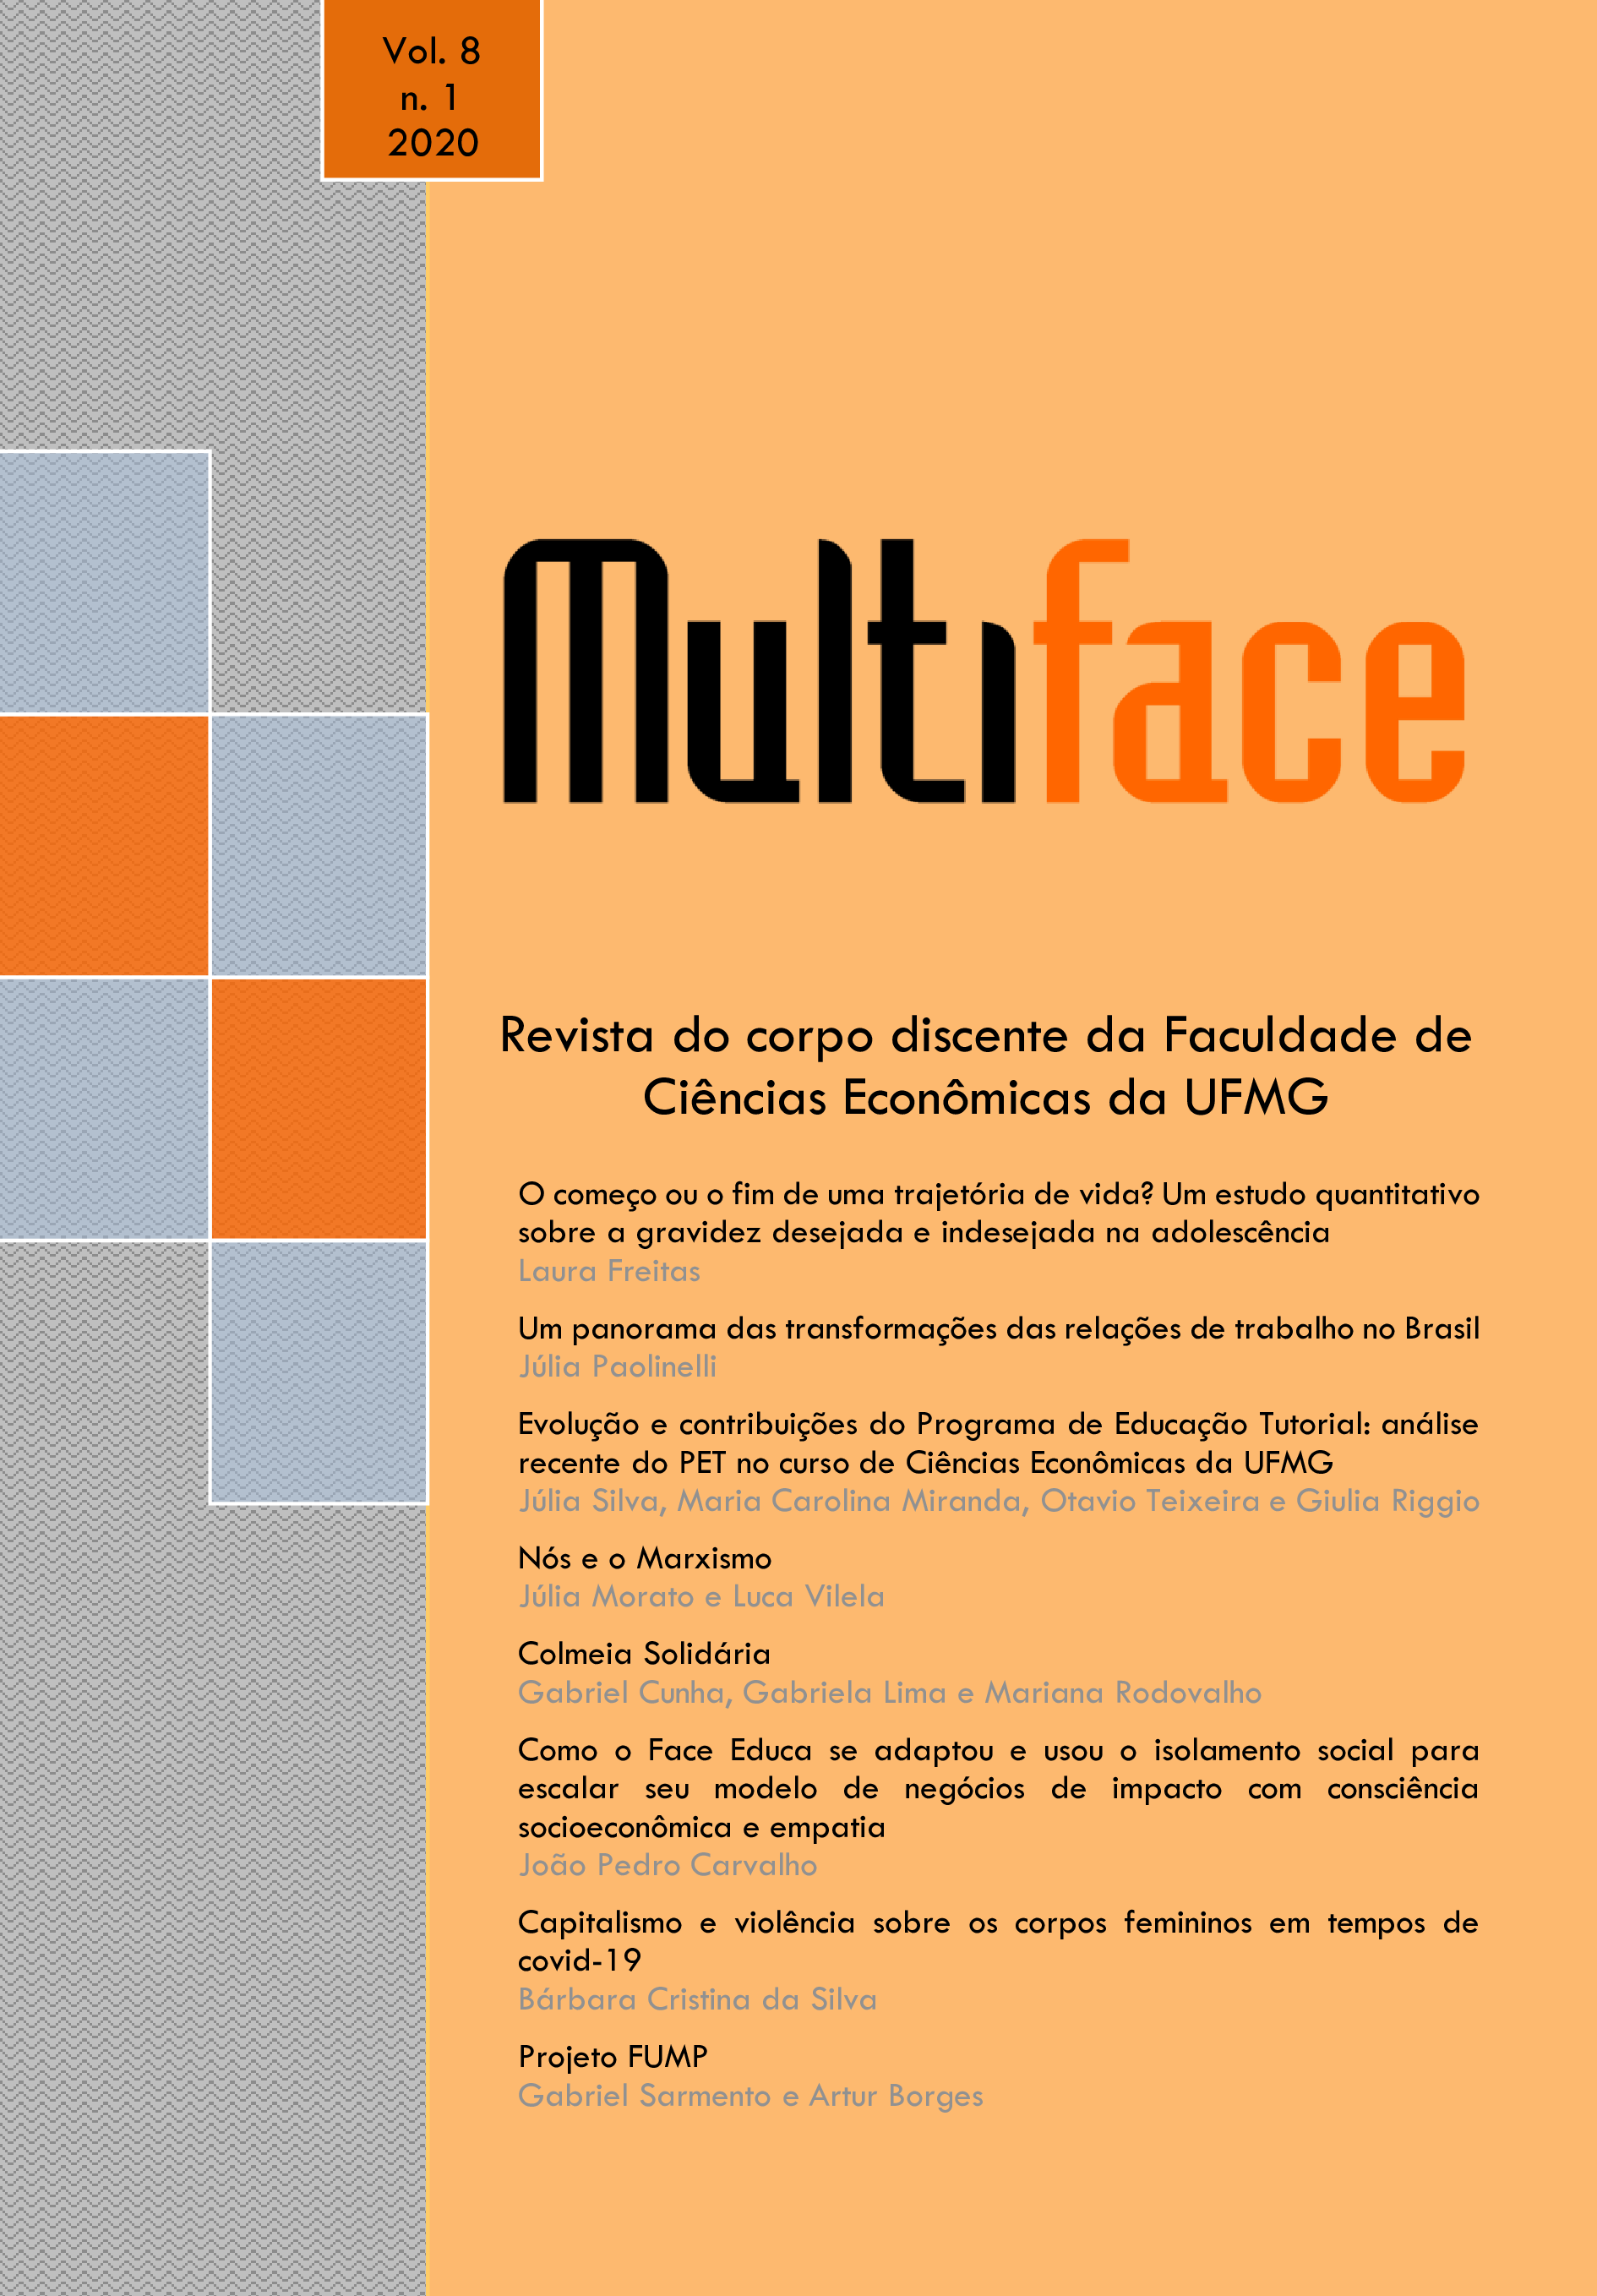 Visualizar v. 8 n. 1 (2020): Revista Multiface